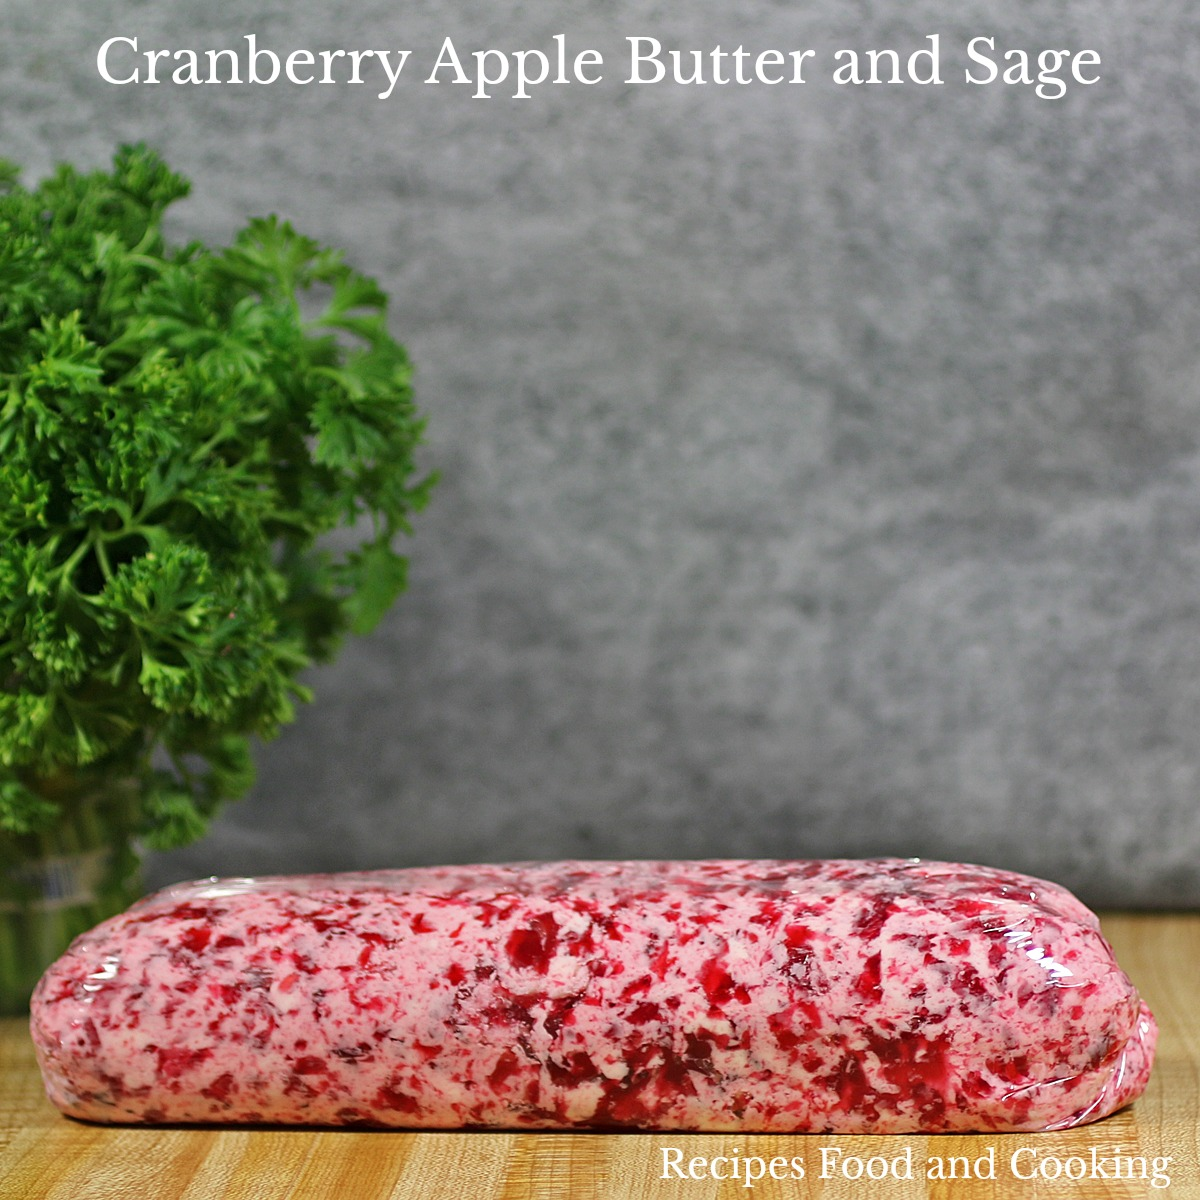 Pork Tenderloin with Cranberry Apple Butter and Sage